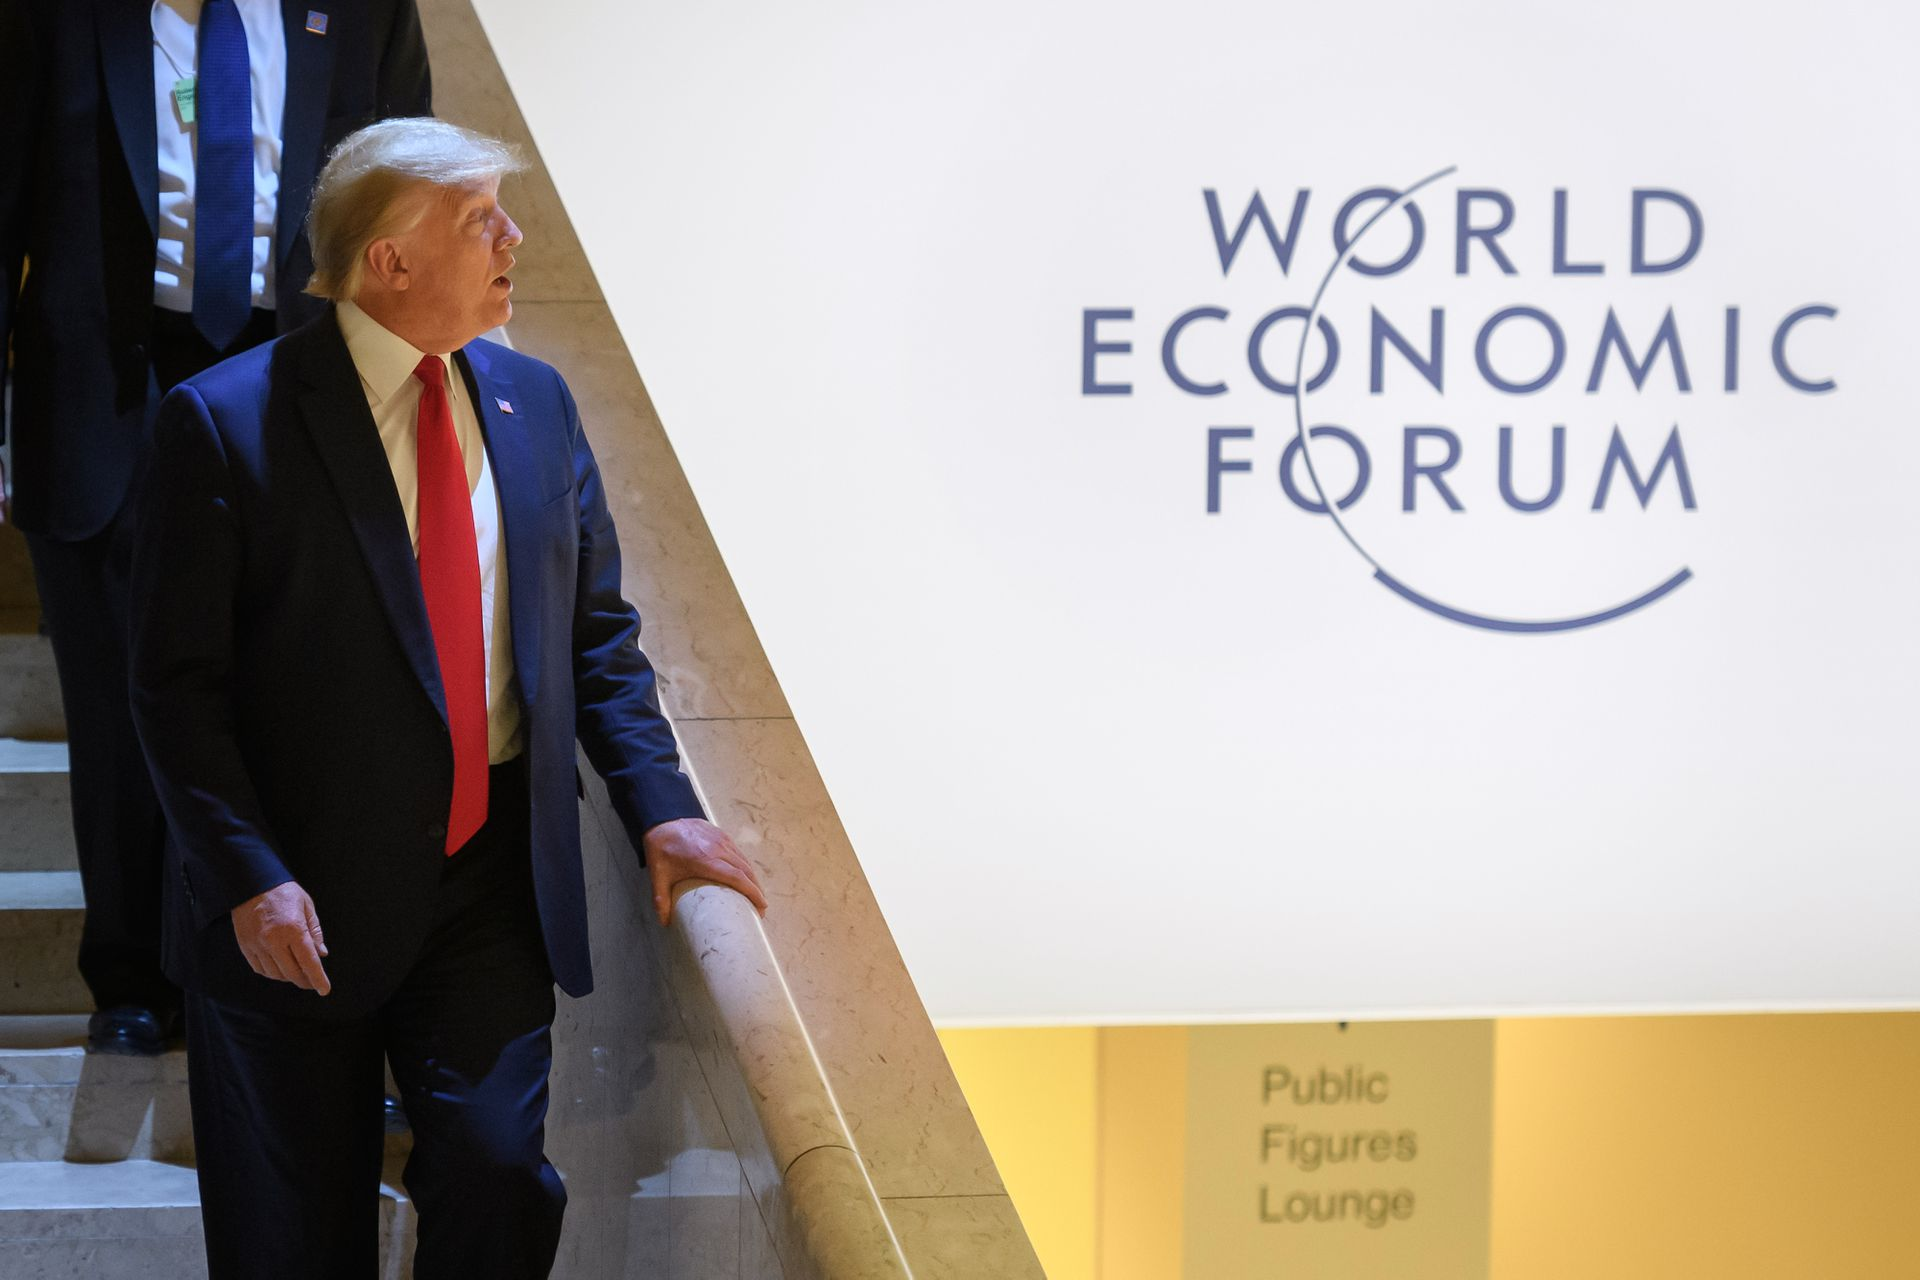 Trump meets with Apple's Cook and other tech execs in Davos